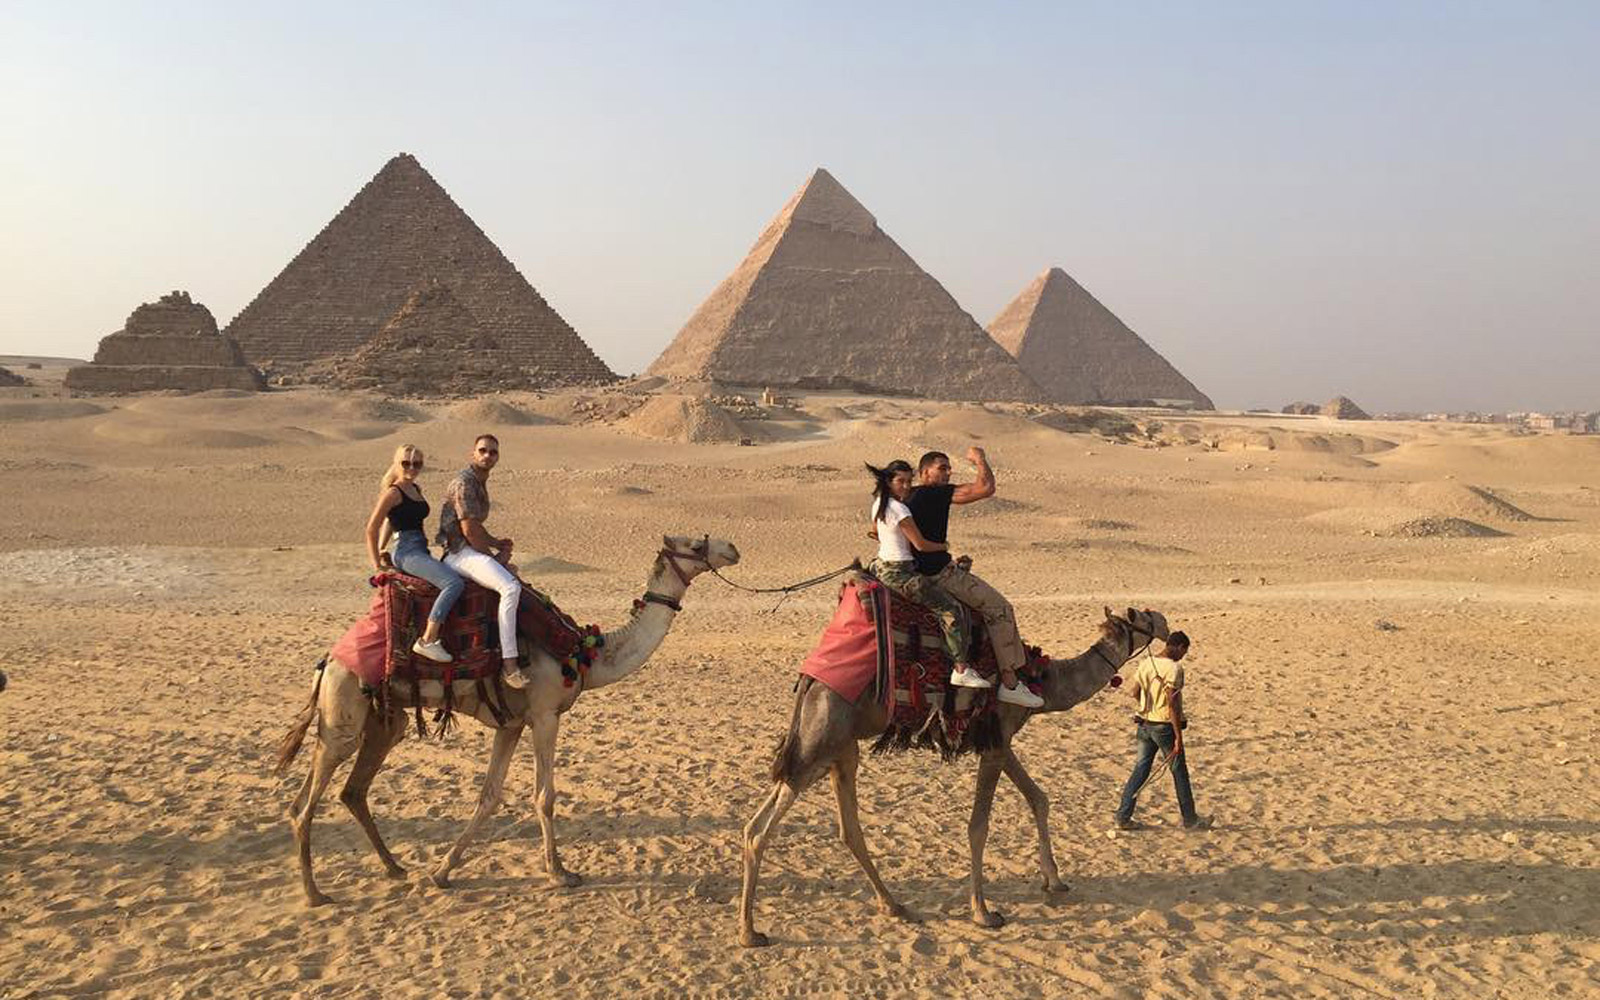 Kourtney Kardashian and Younes Bendjima riding camels in Egypt